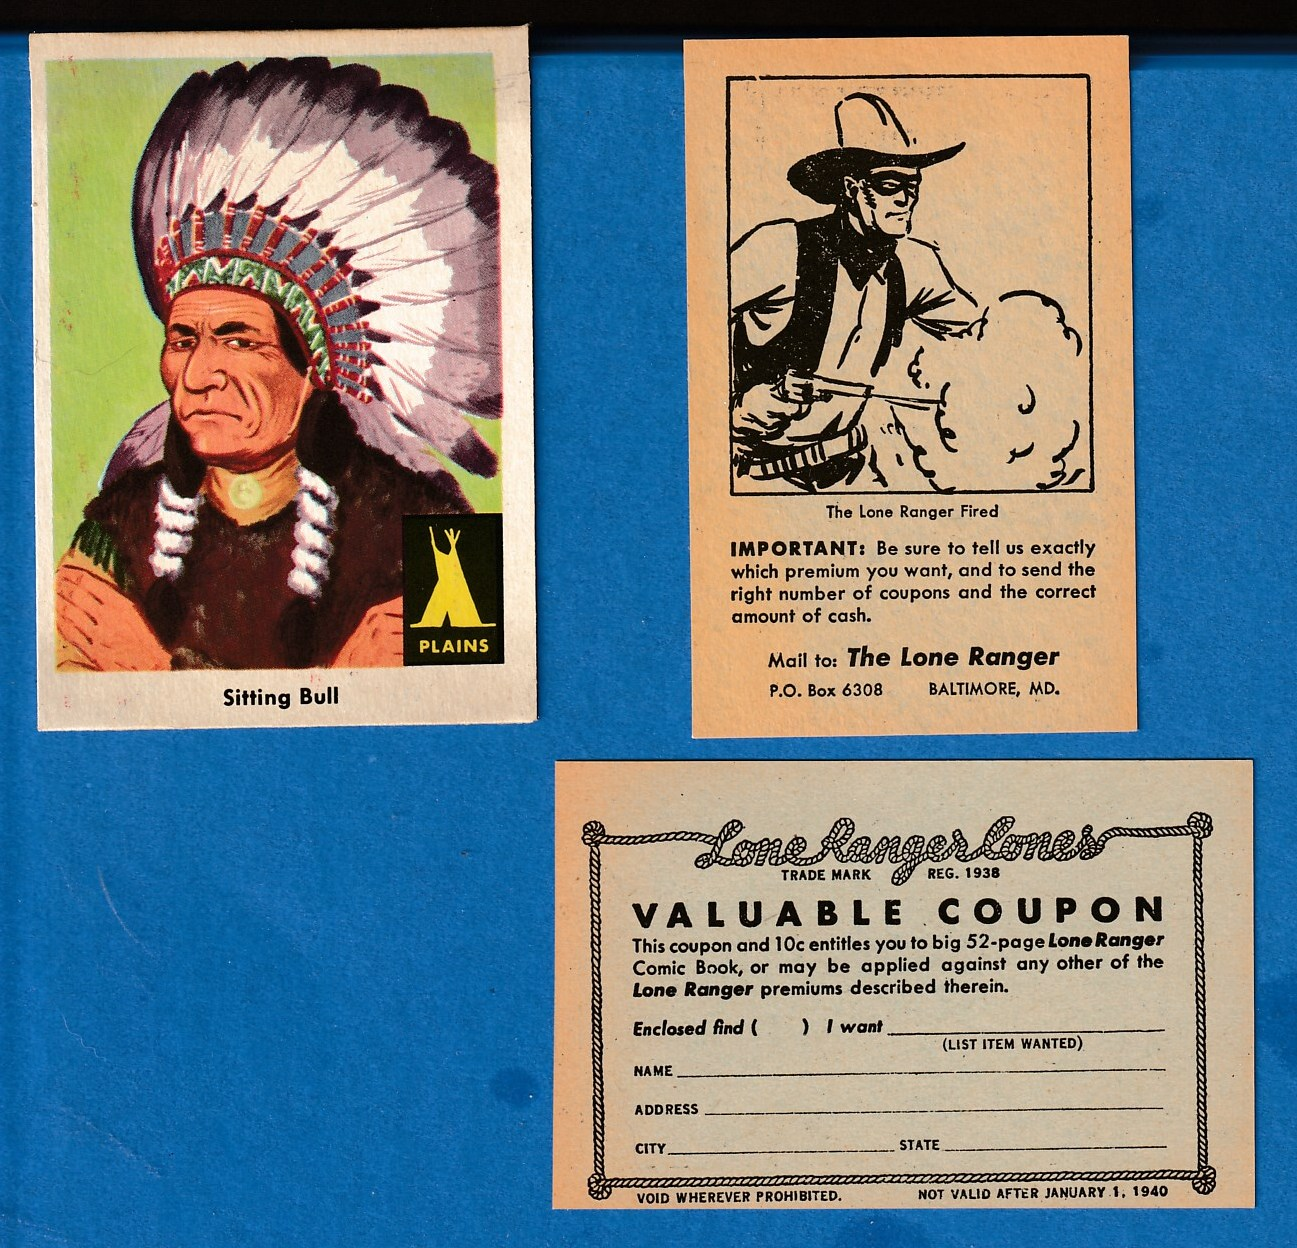 1939 Lone Ranger Cones Coupon card - The Lone Ranger Fired n cards value